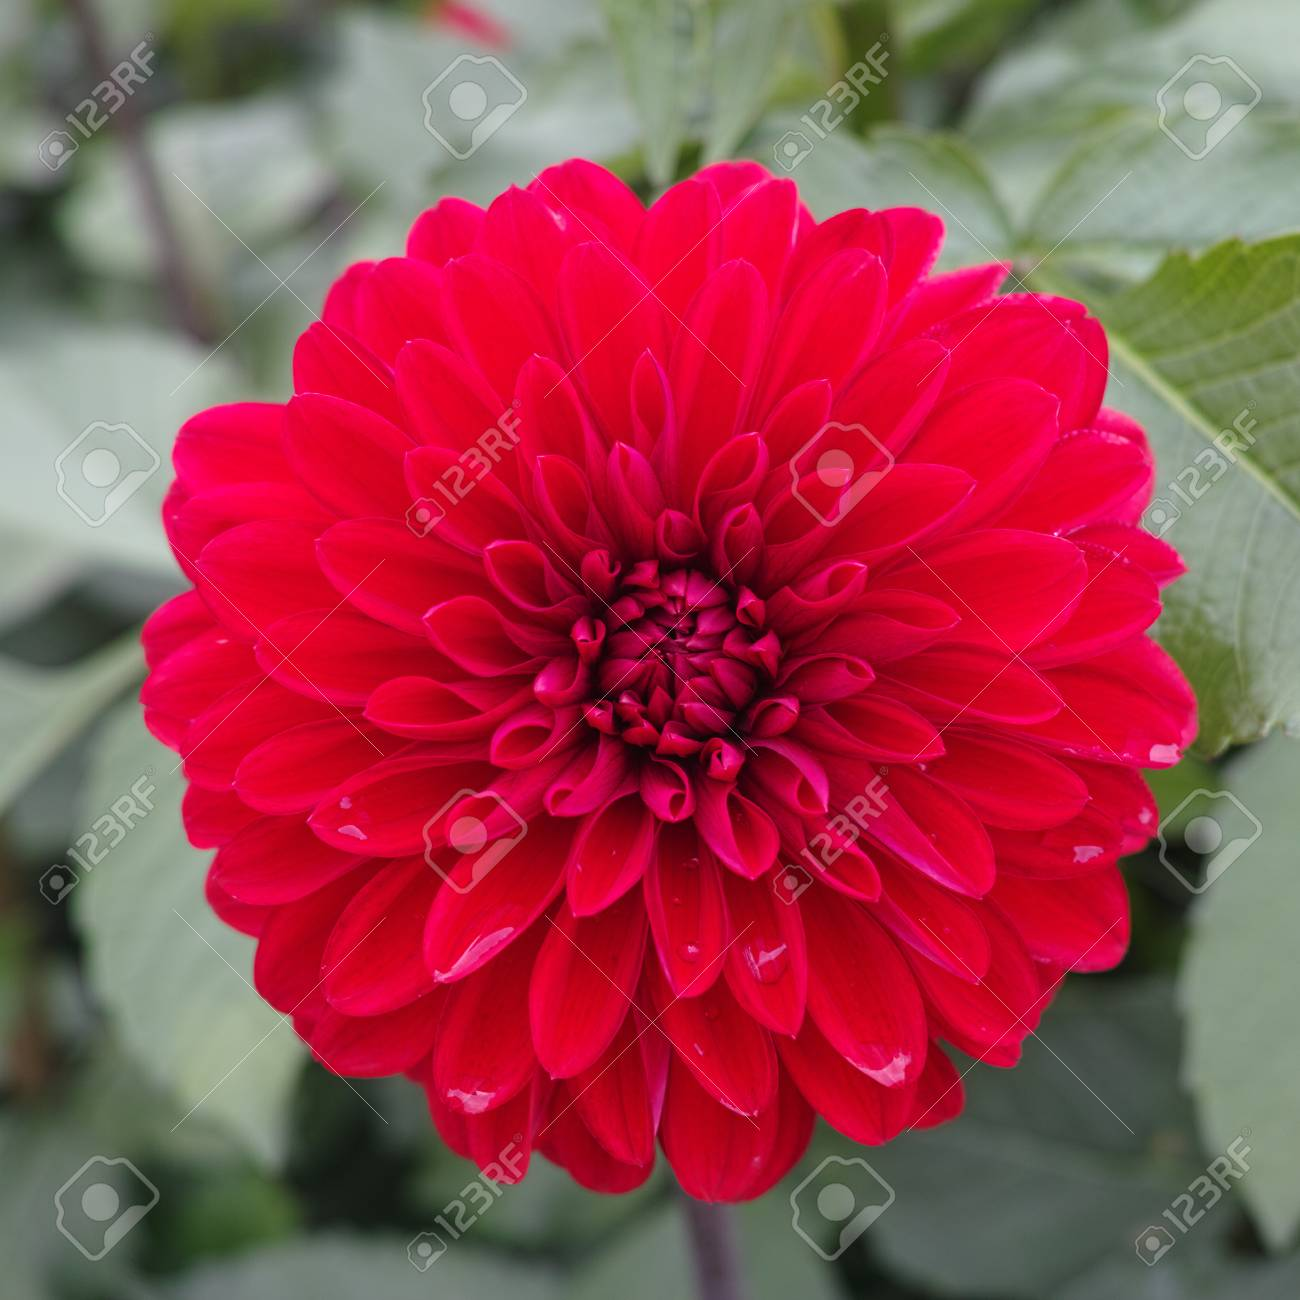 Pink Rose Dahlia Flower On The Plant Beautiful Bouquet Or Decoration